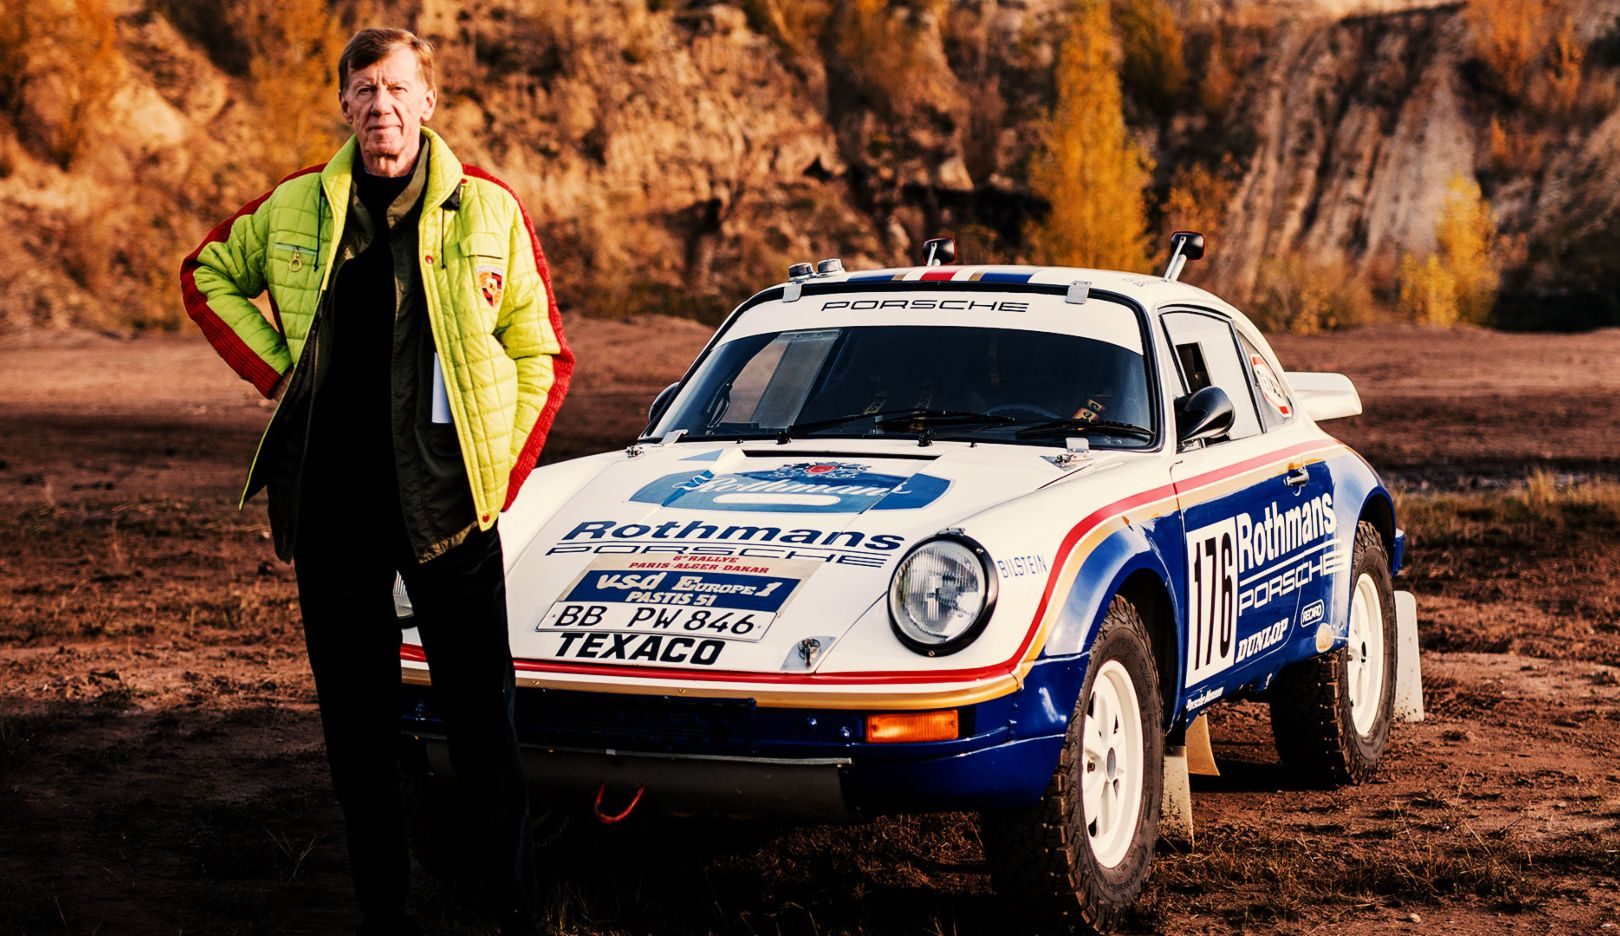 Beyond the comfort zone: Walter Röhrl and the top 5 rally cars